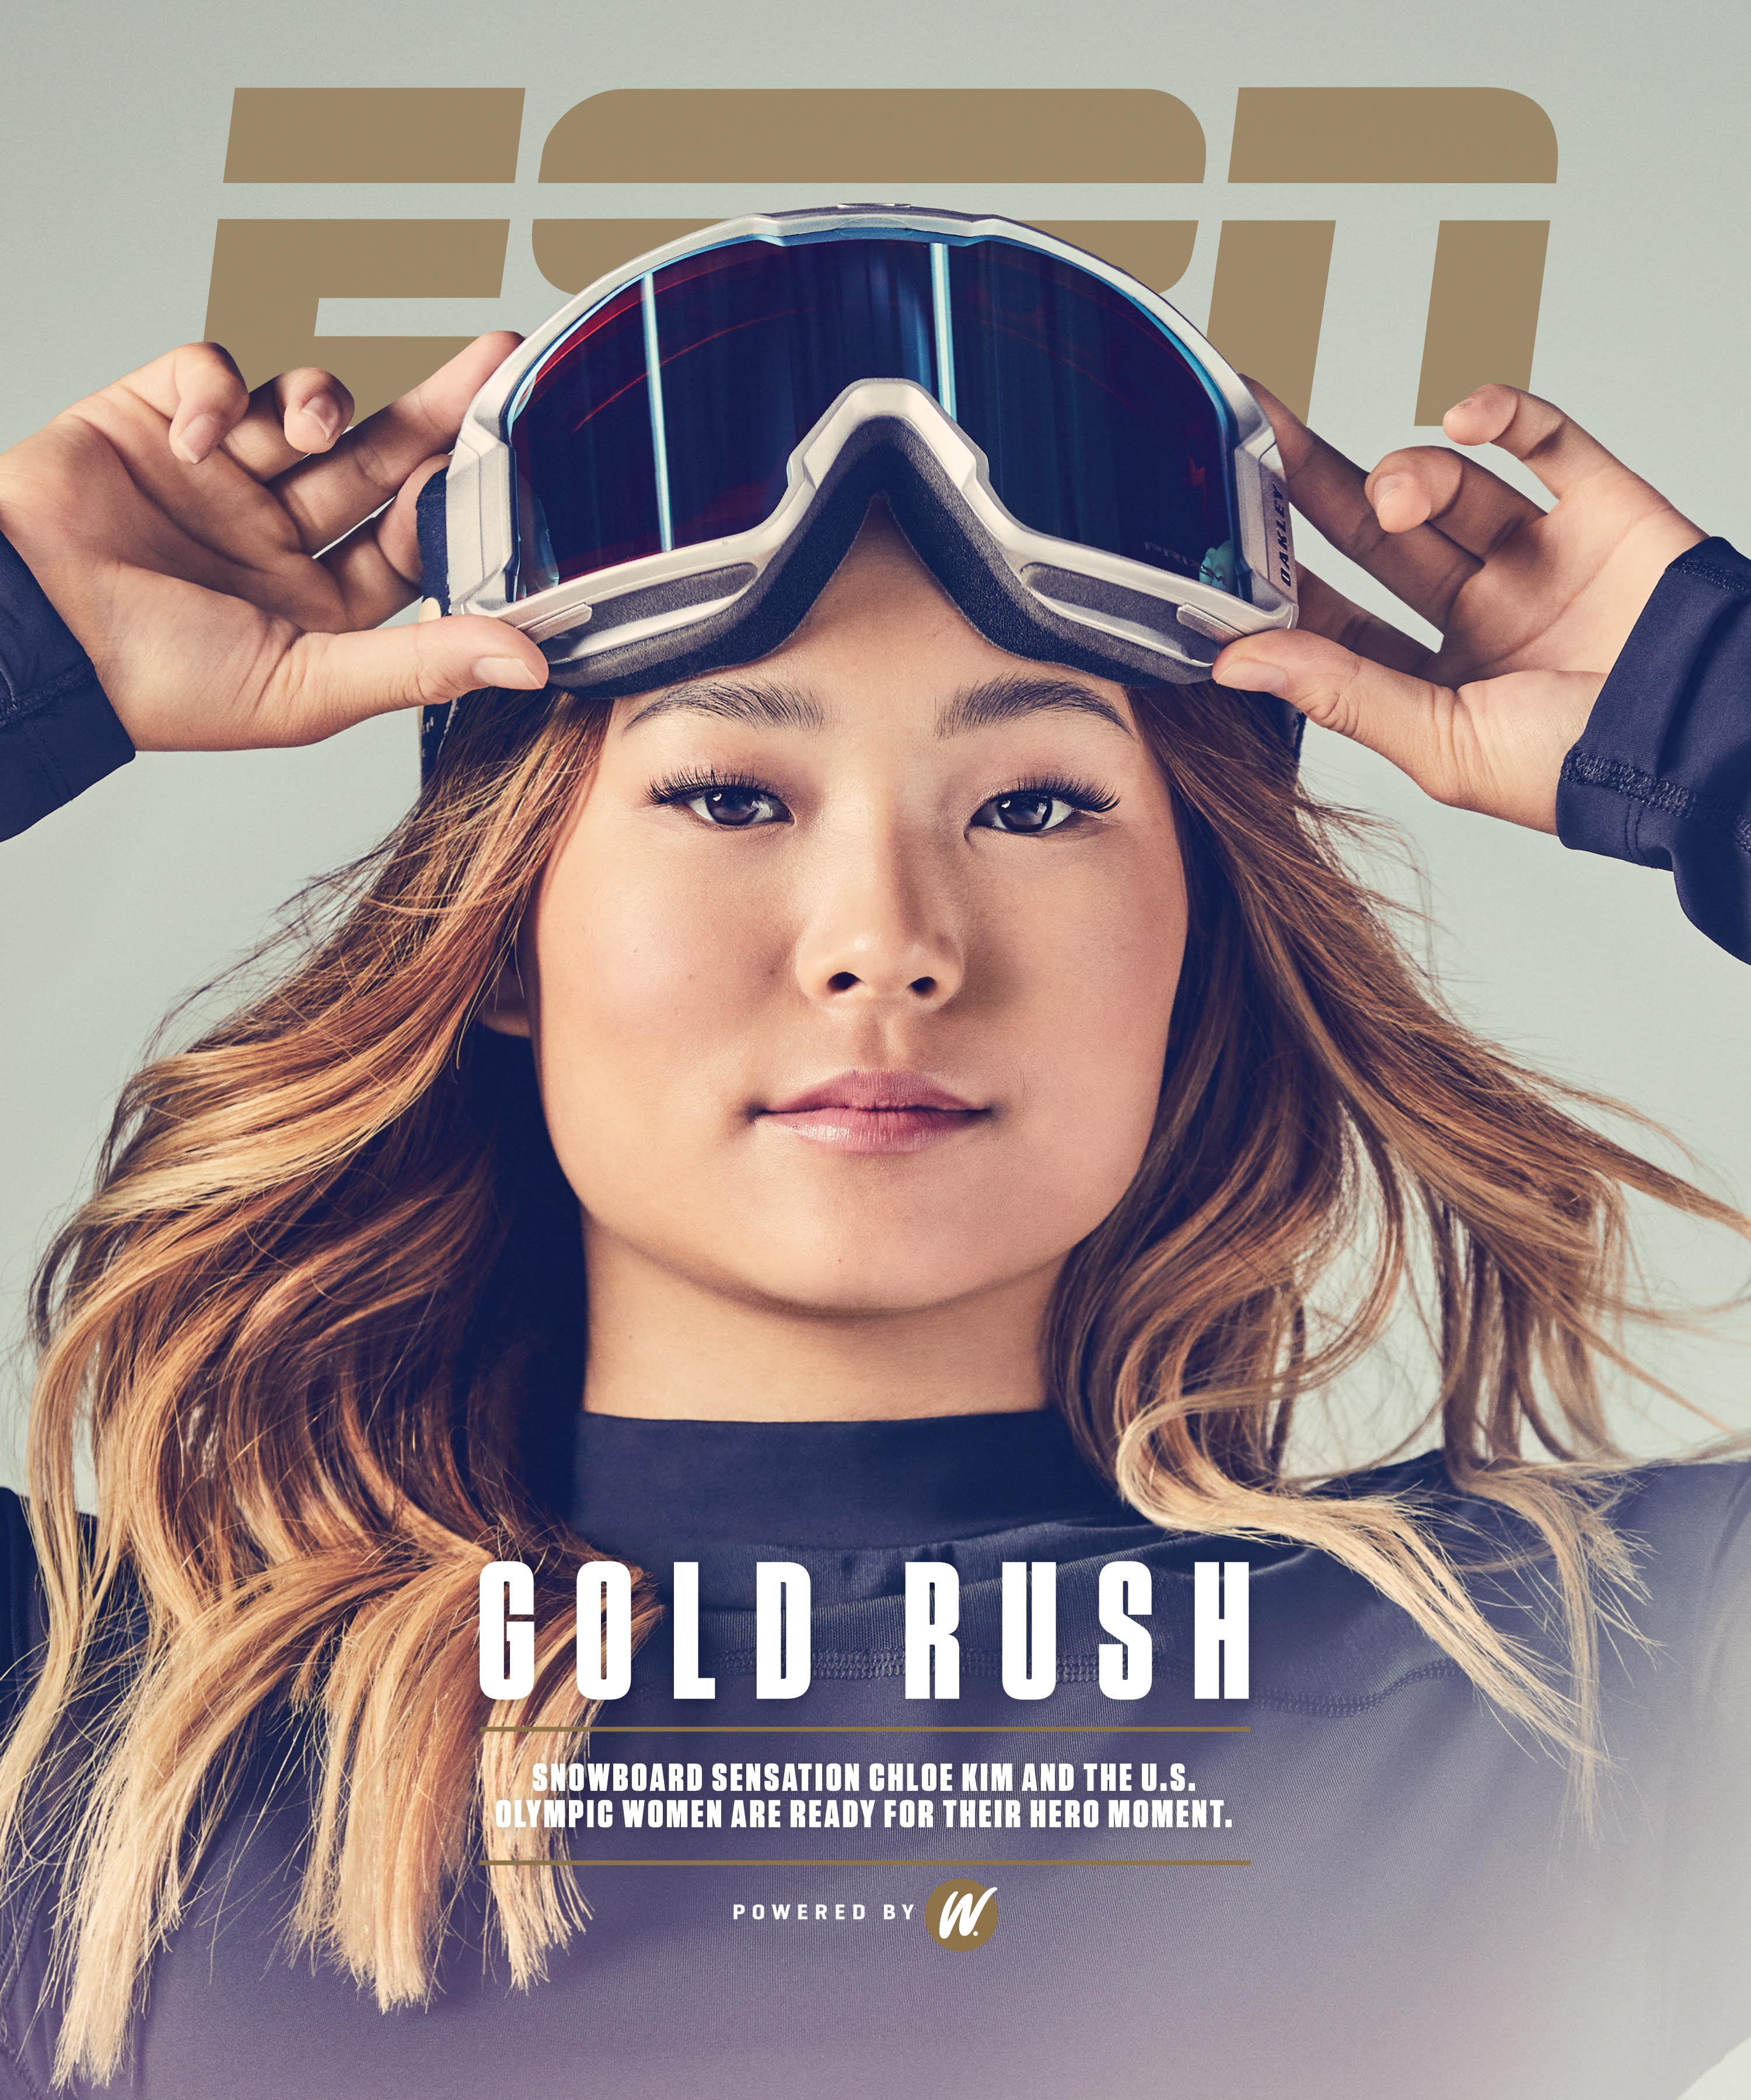 Chloe Kim for ESPN cover story by Ramona Rosales